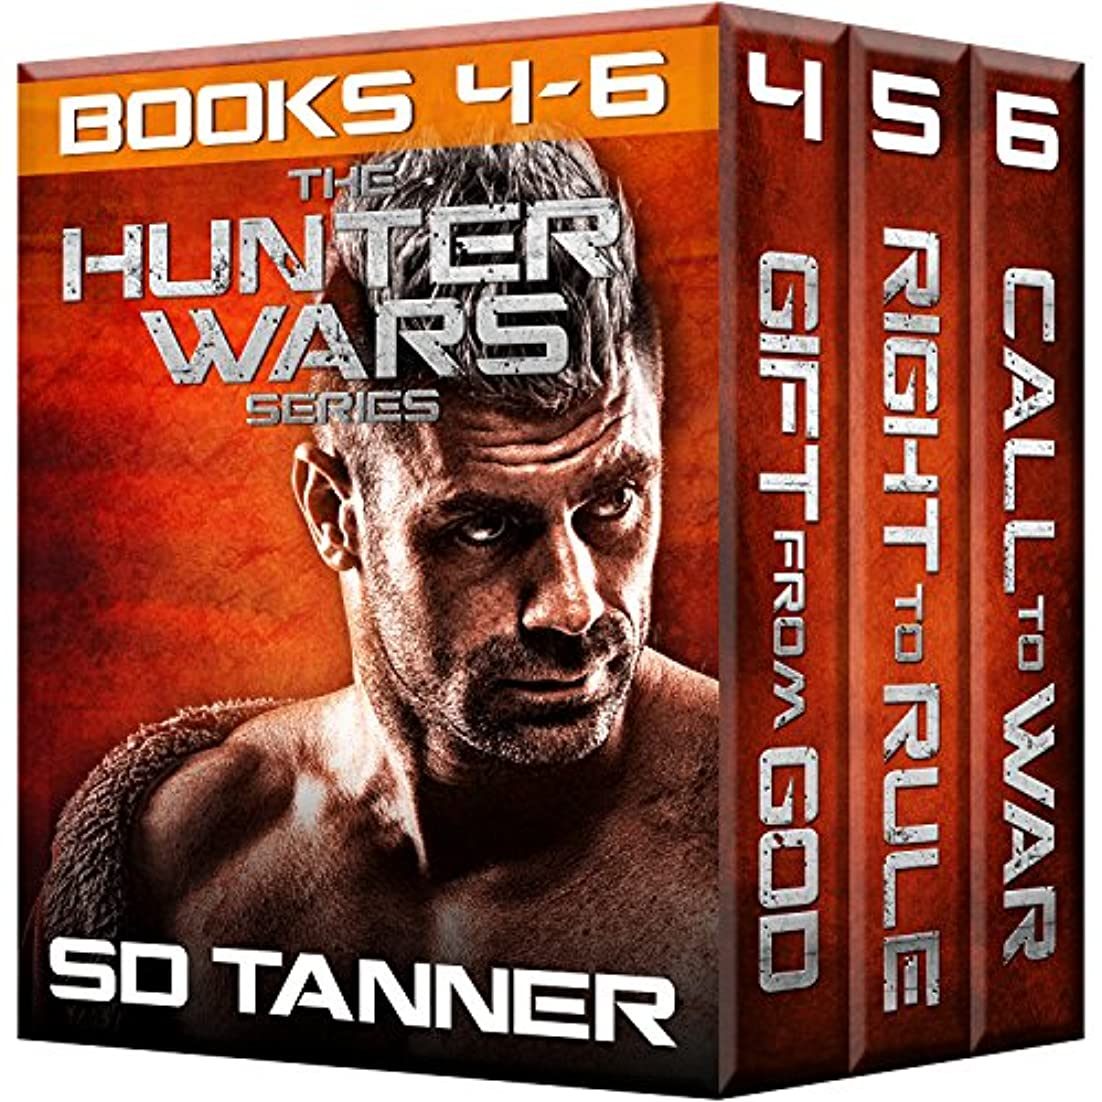 口述する疑わしい民主党Hunter Wars Series (Books 4 - 6) (Hunter Wars Boxed Sets Book 2) (English Edition)